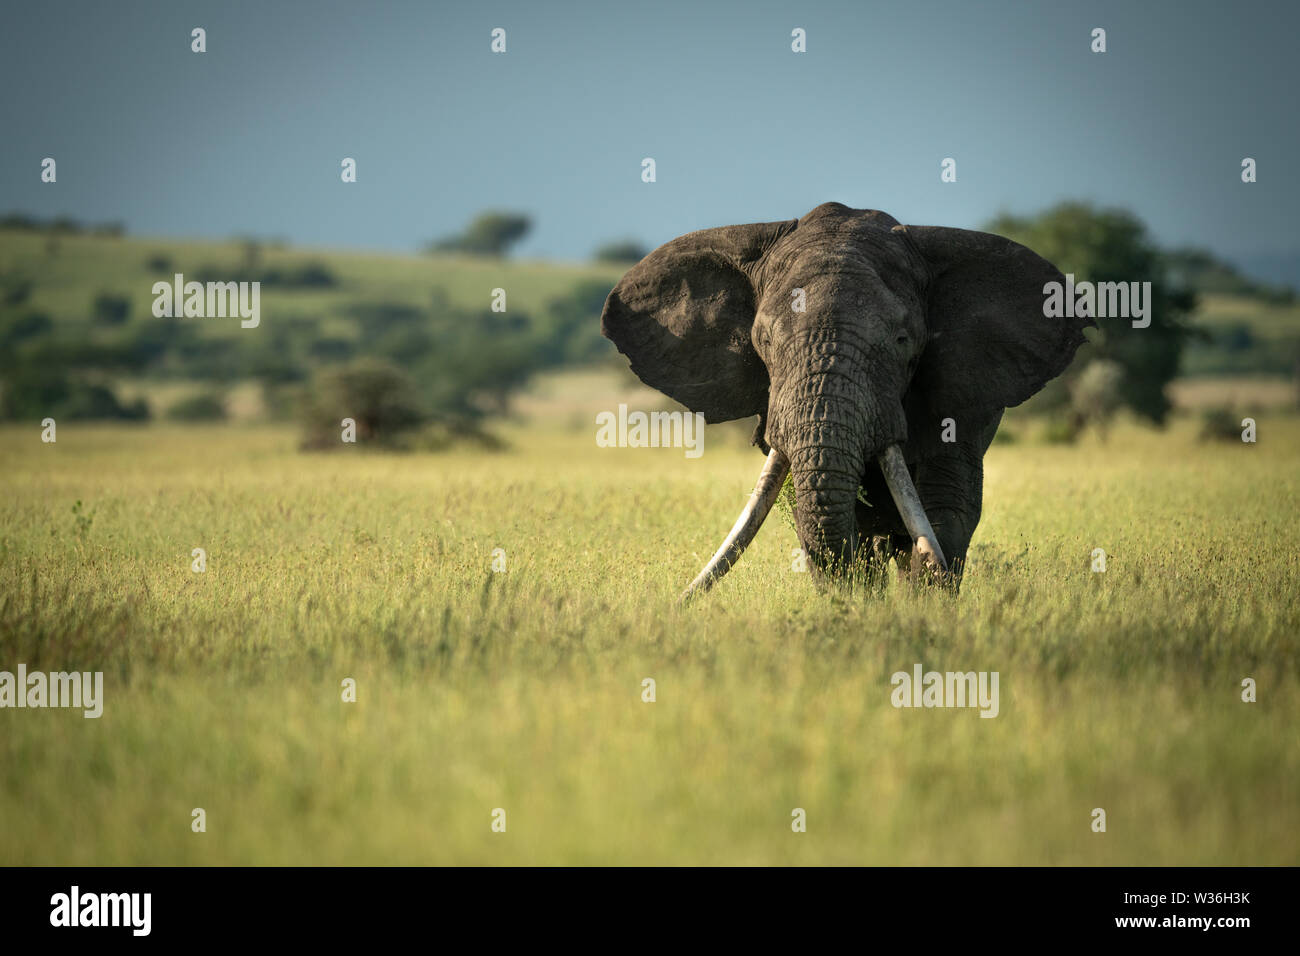 African bush elephant stands in long grass - Stock Image